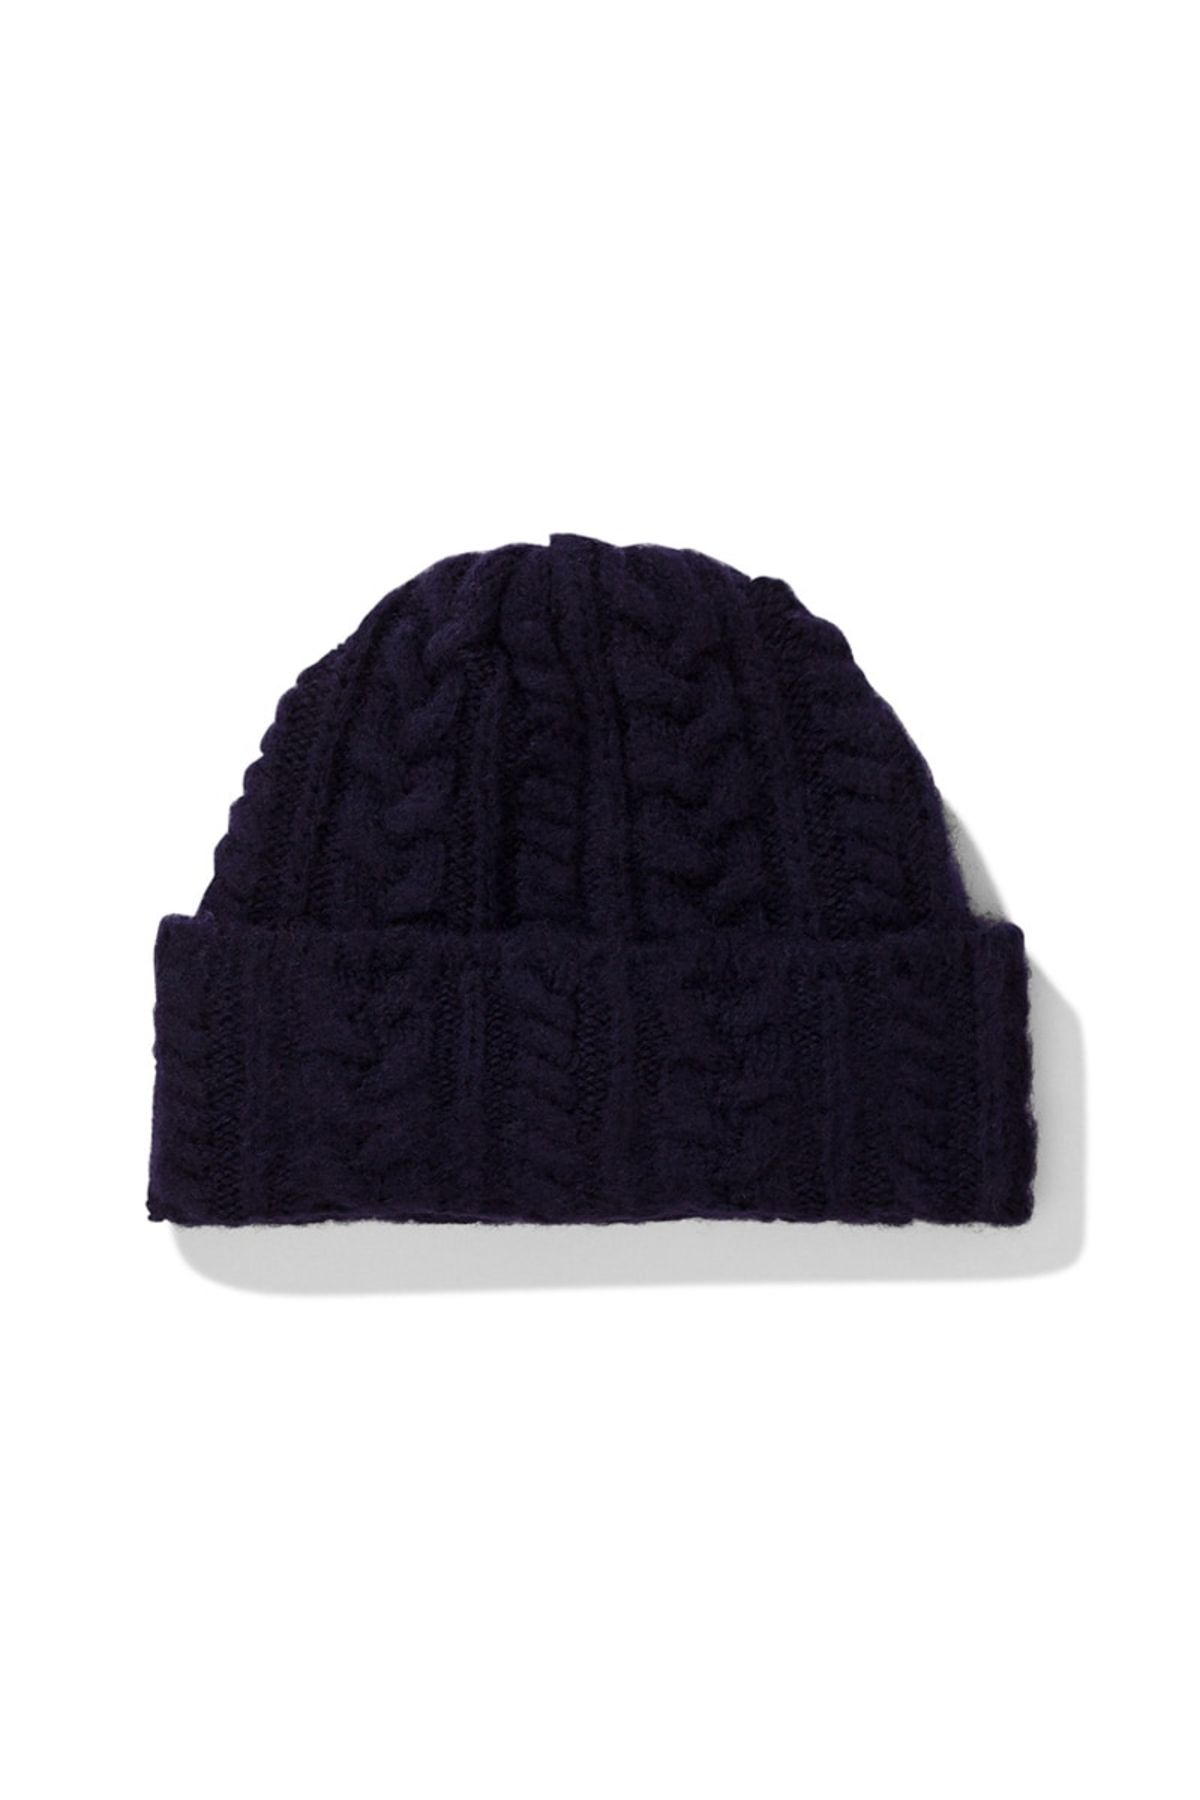 8b12d5bdf Norse Projects Brushed Cable Beanie - Dark Navy on Garmentory